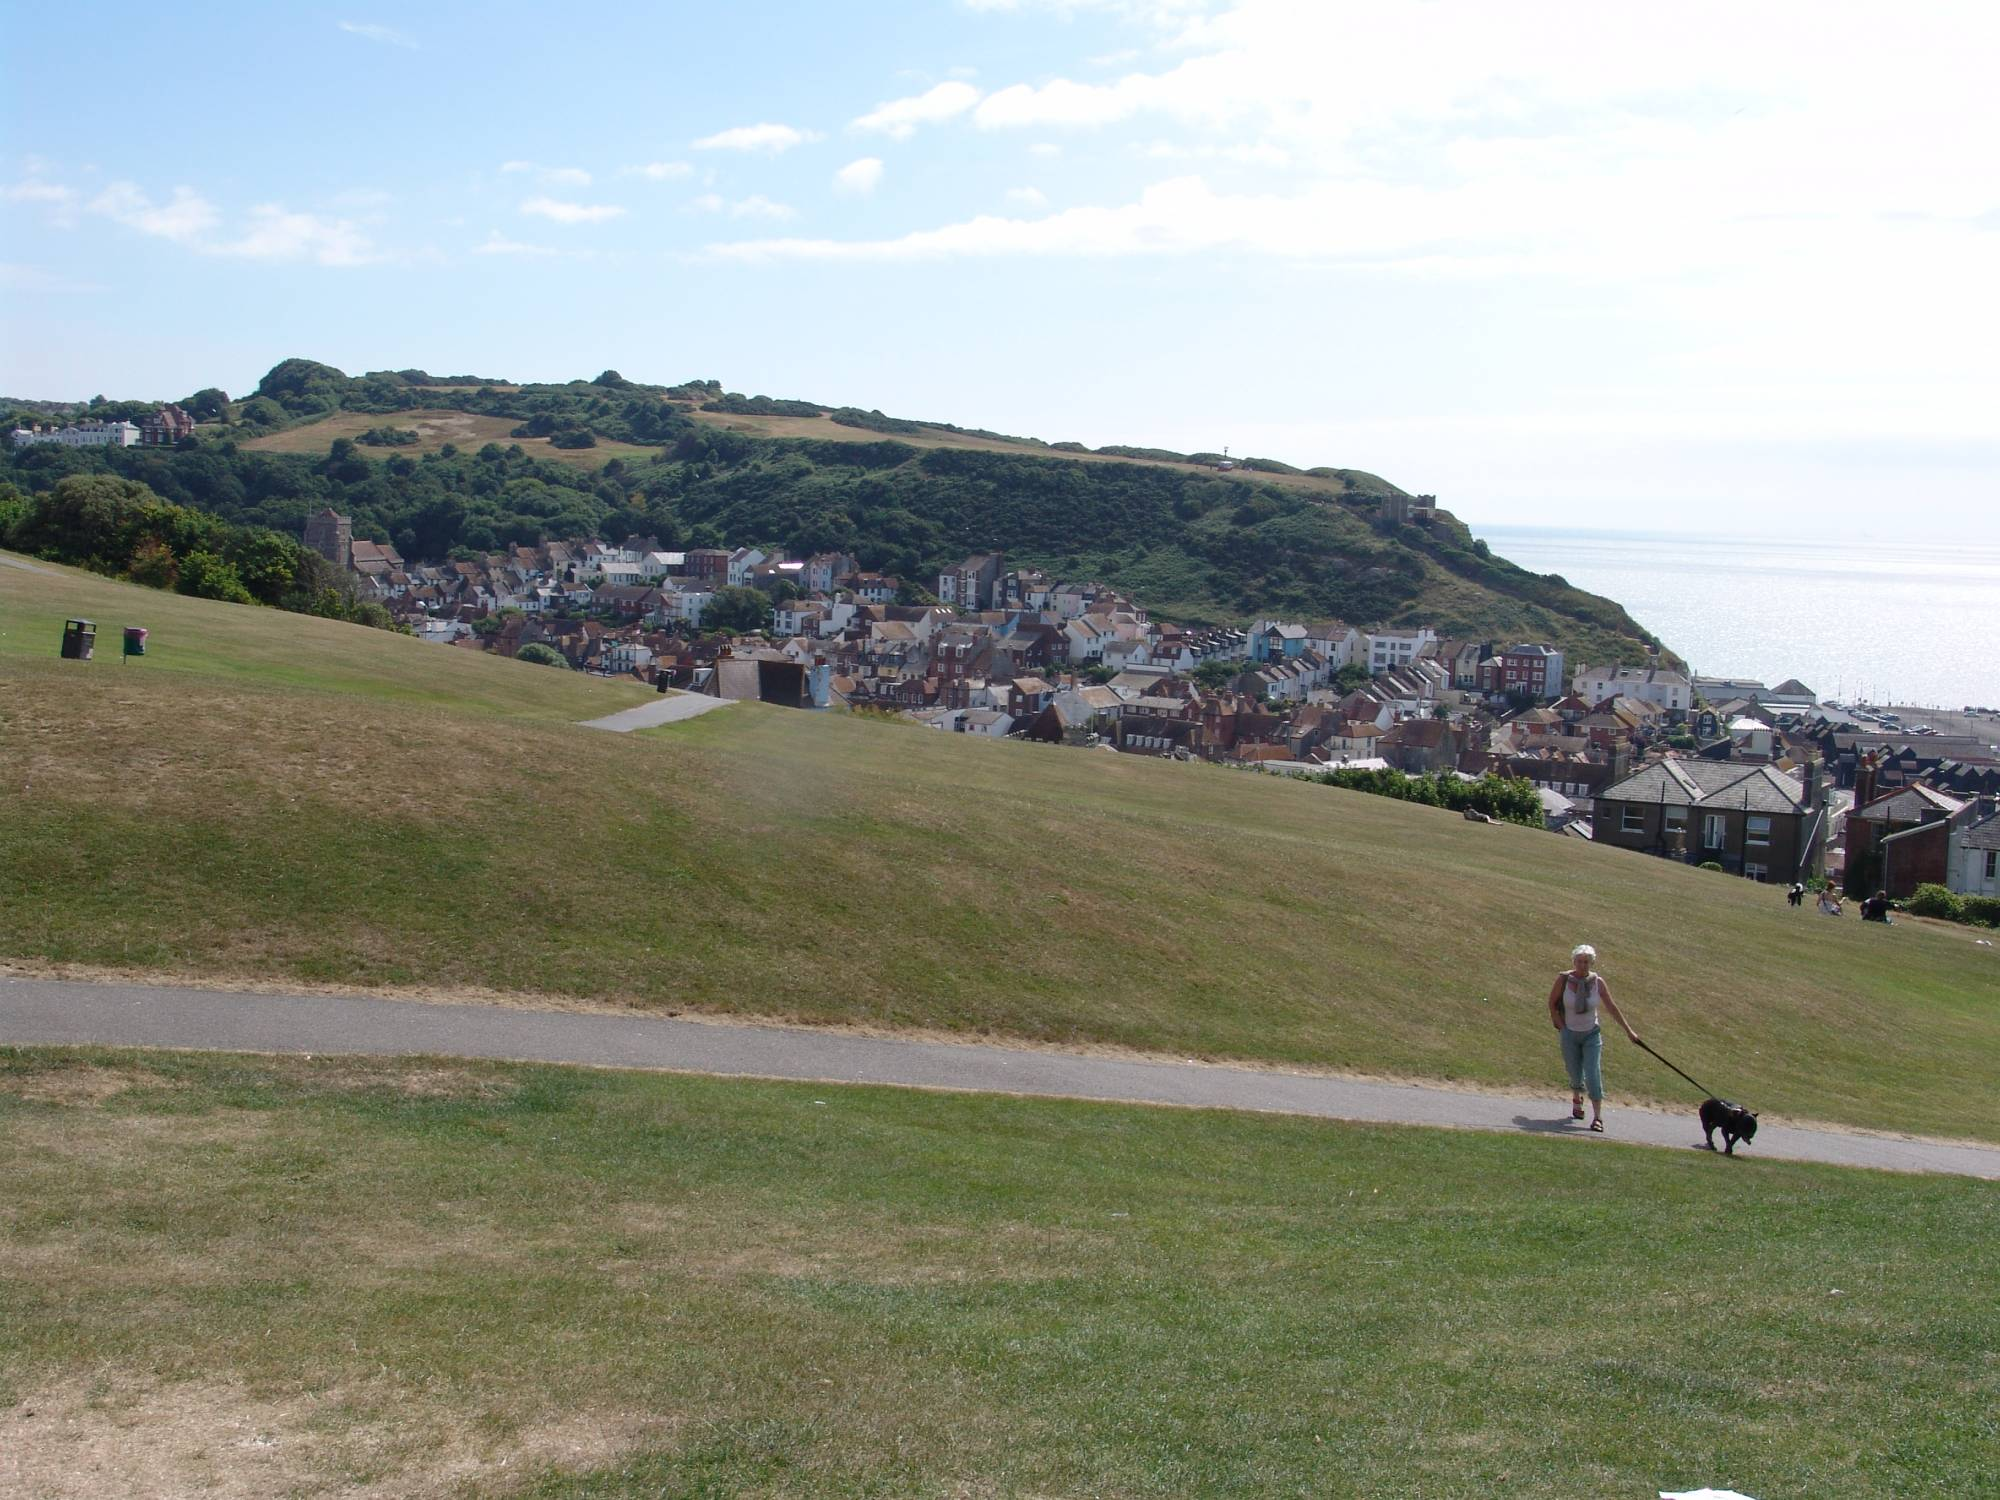 Explore British history in Hastings, England | PassPorter.com